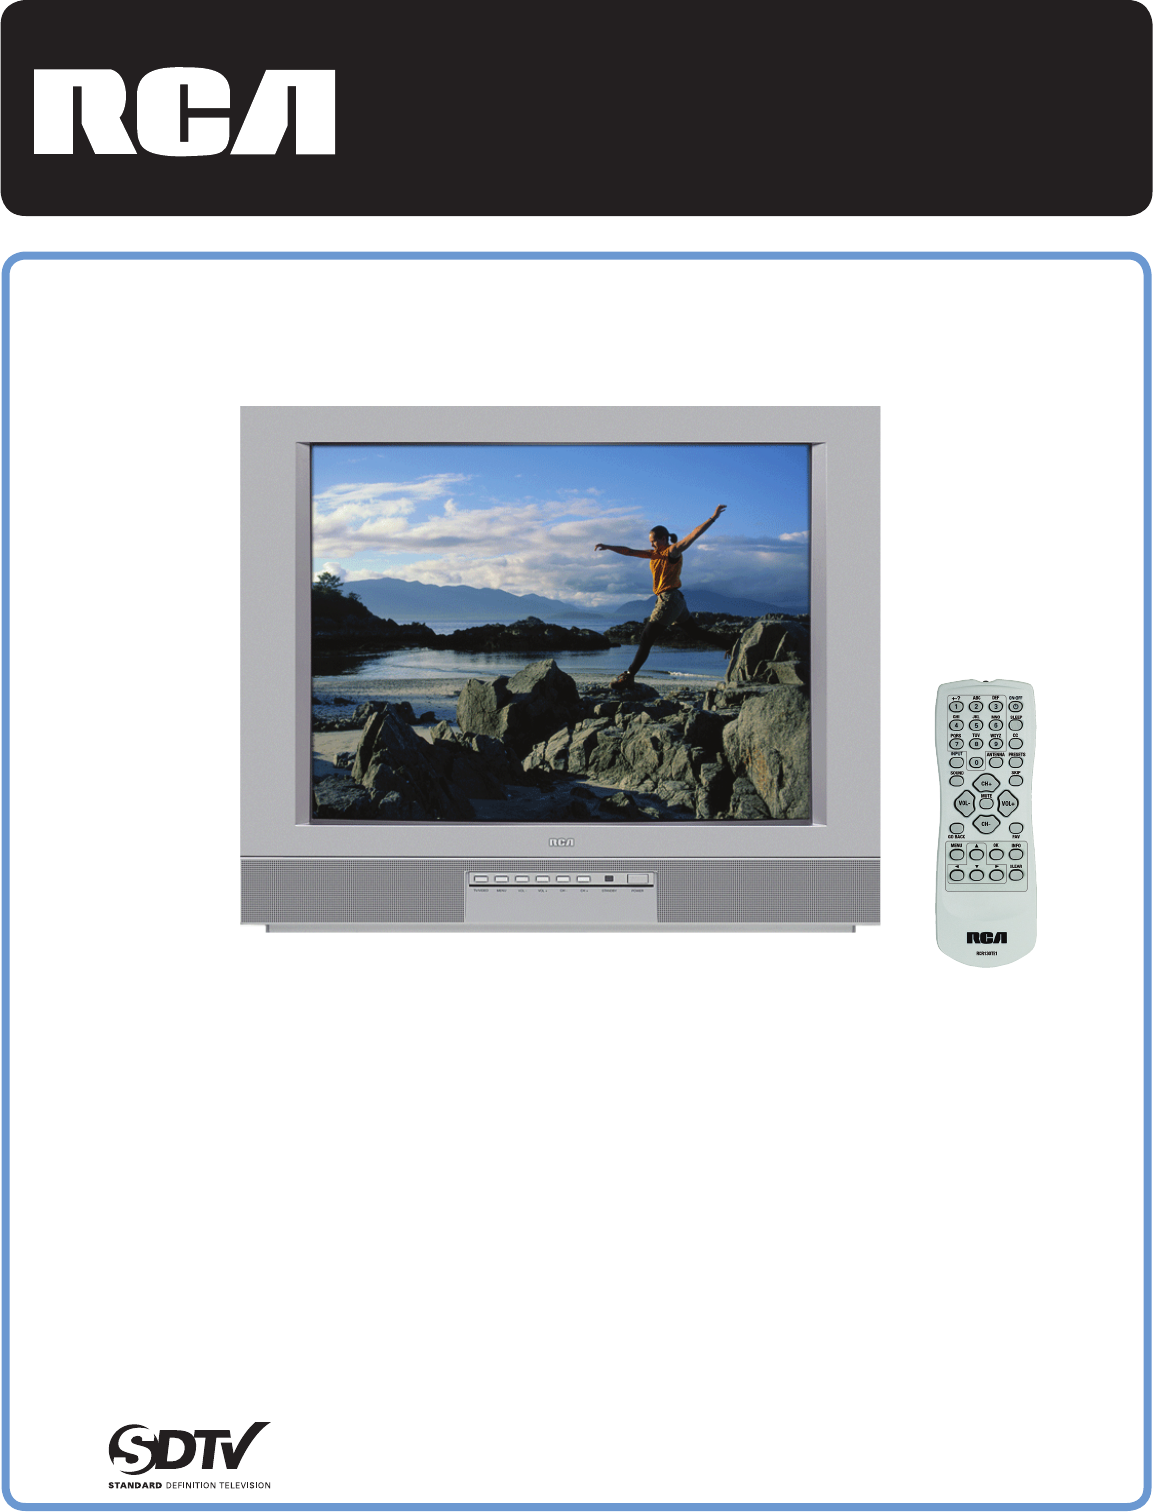 rca crt television 27v414t user guide manualsonline com rh tv manualsonline com rca tv user guide sld50a45rq rca led tv user manual